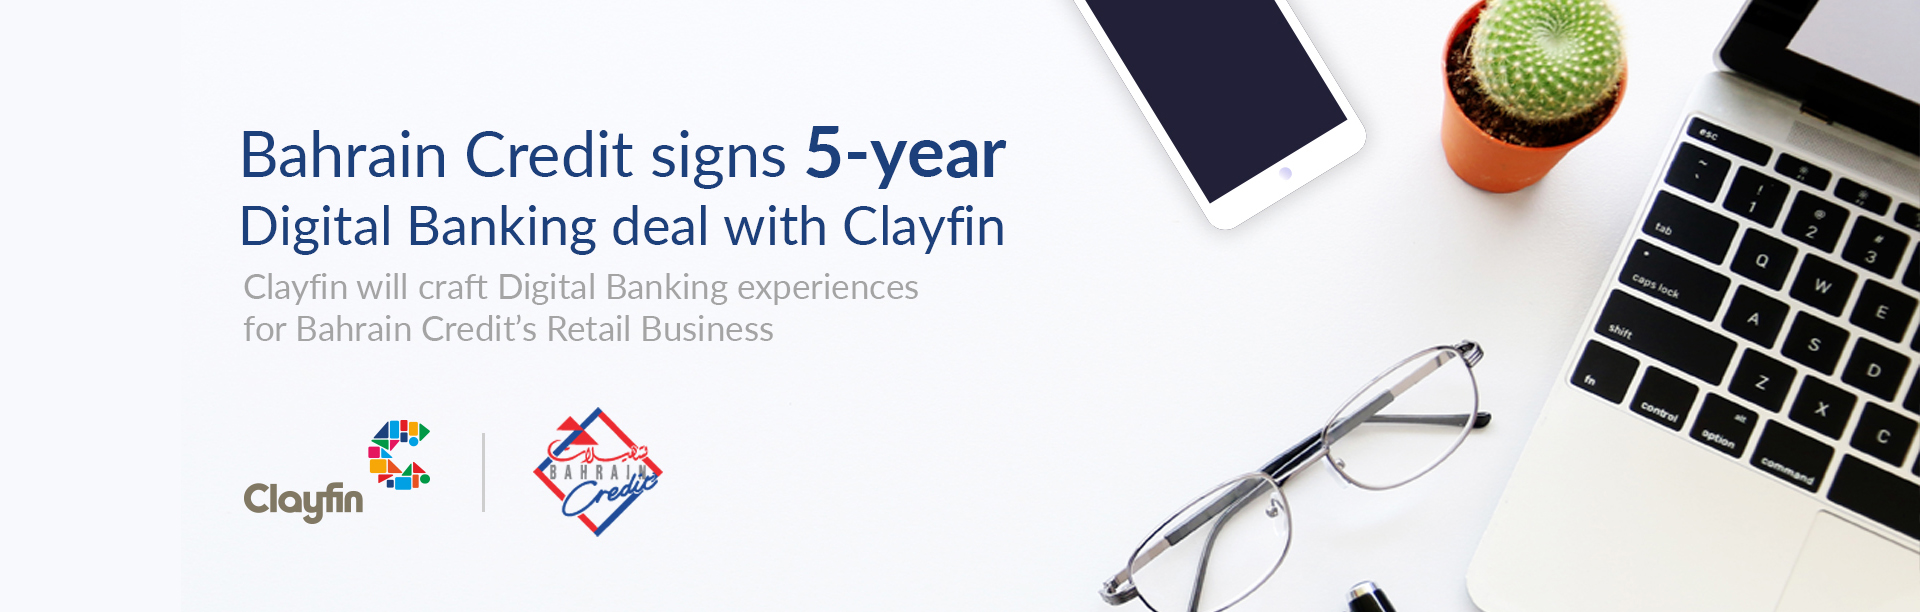 Bahrain Credit signs 5-year Digital Banking deal with Clayfin